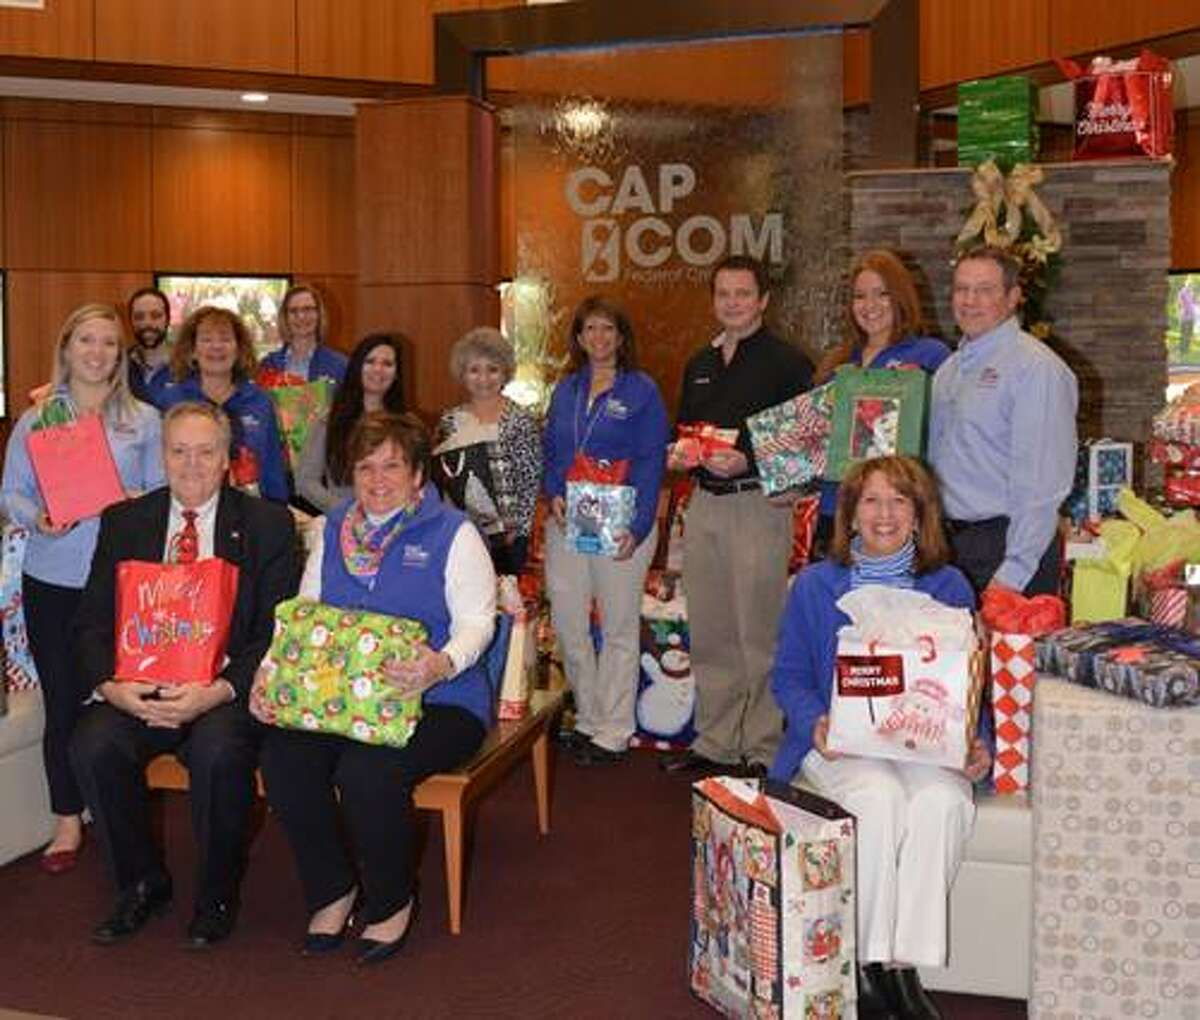 From left, Edward Neary, executive director of Colonie Senior Service Centers; Paula Stopera, president/CEO of CAP COM Federal Credit Union, and staff from CAPCOM and Colonie Senior Service Centers gather to collect gifts in preparation for delivery to seniors this month. (Amanda Goyer)